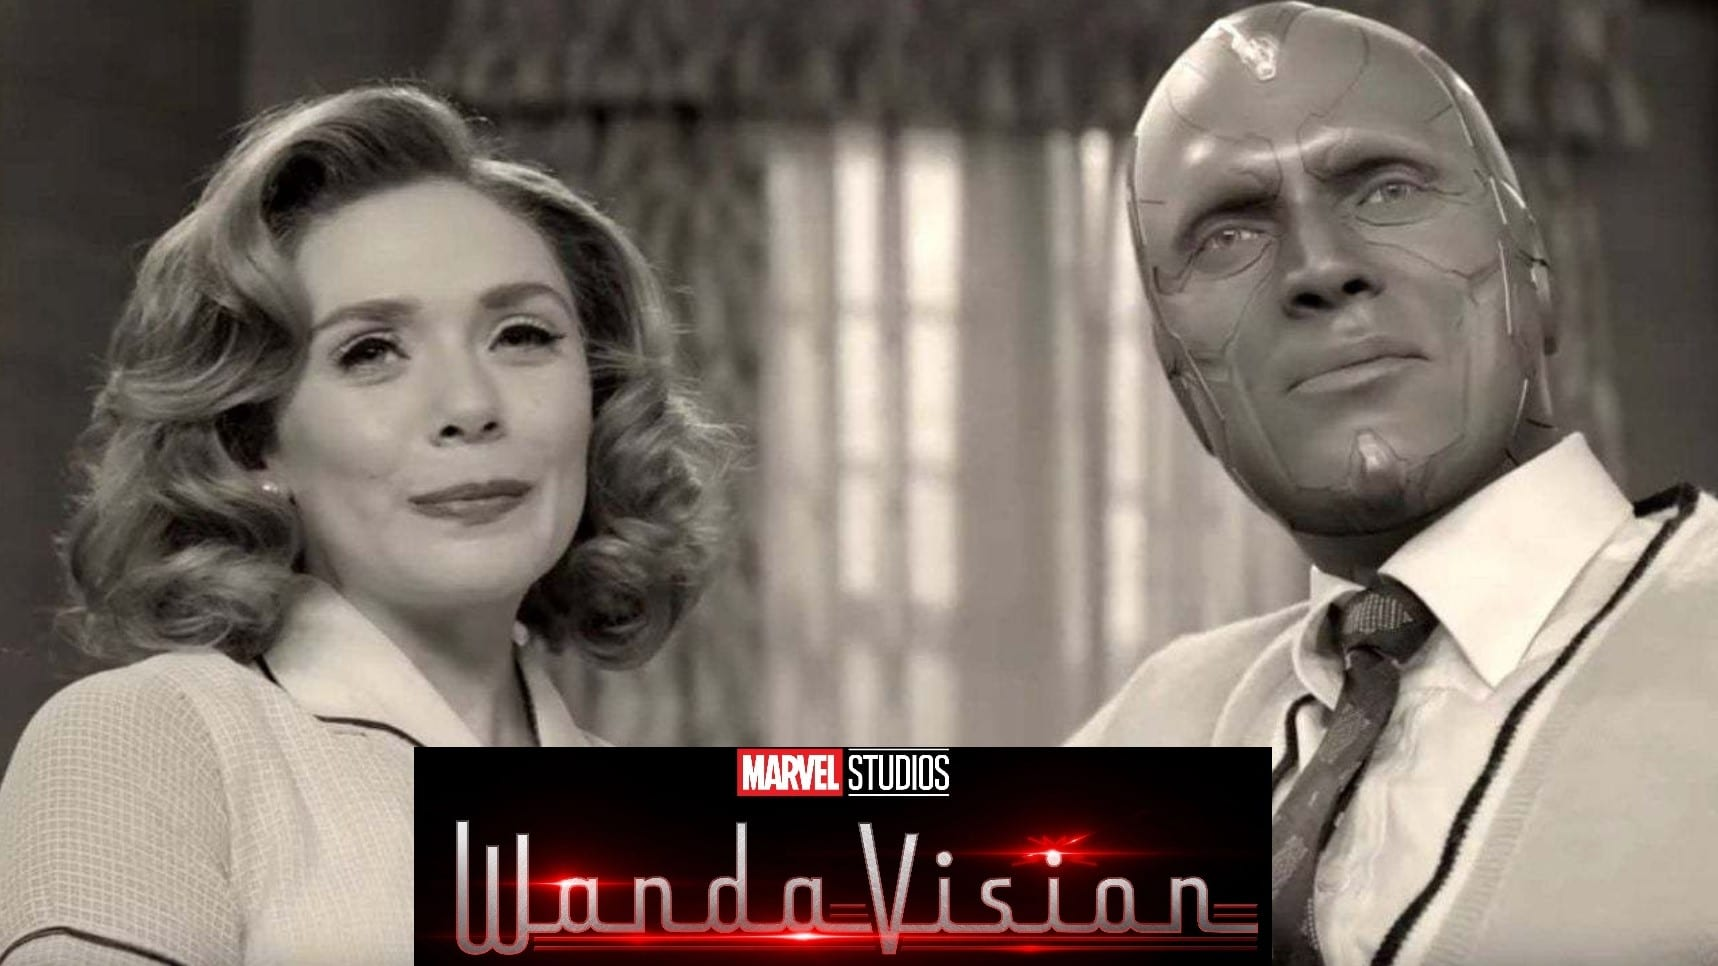 Disney confirms WandaVision will still debut in 2020